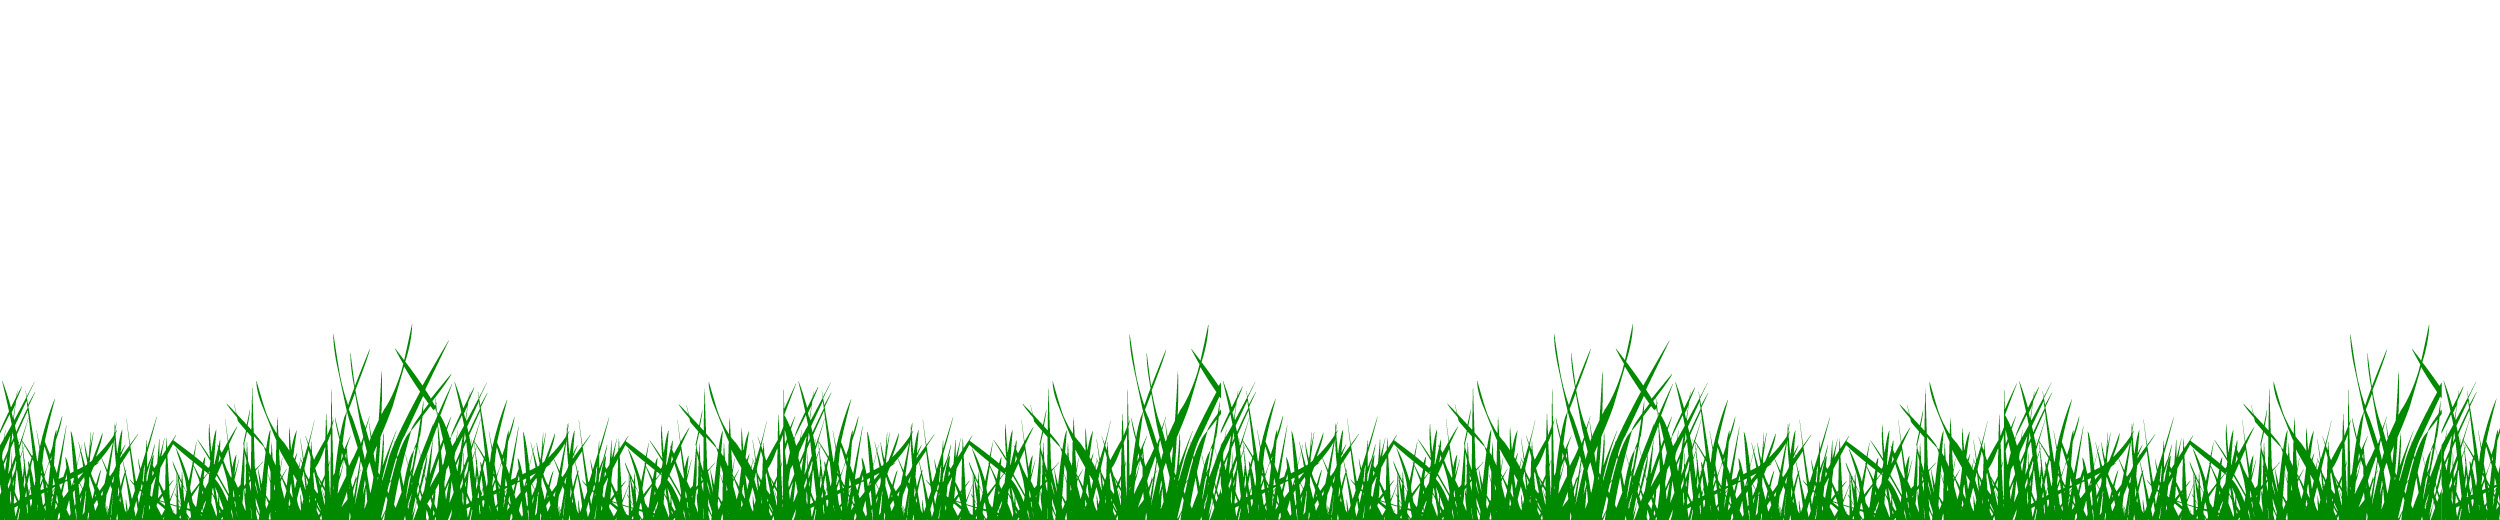 Dog-Jog-slider_Grass-background